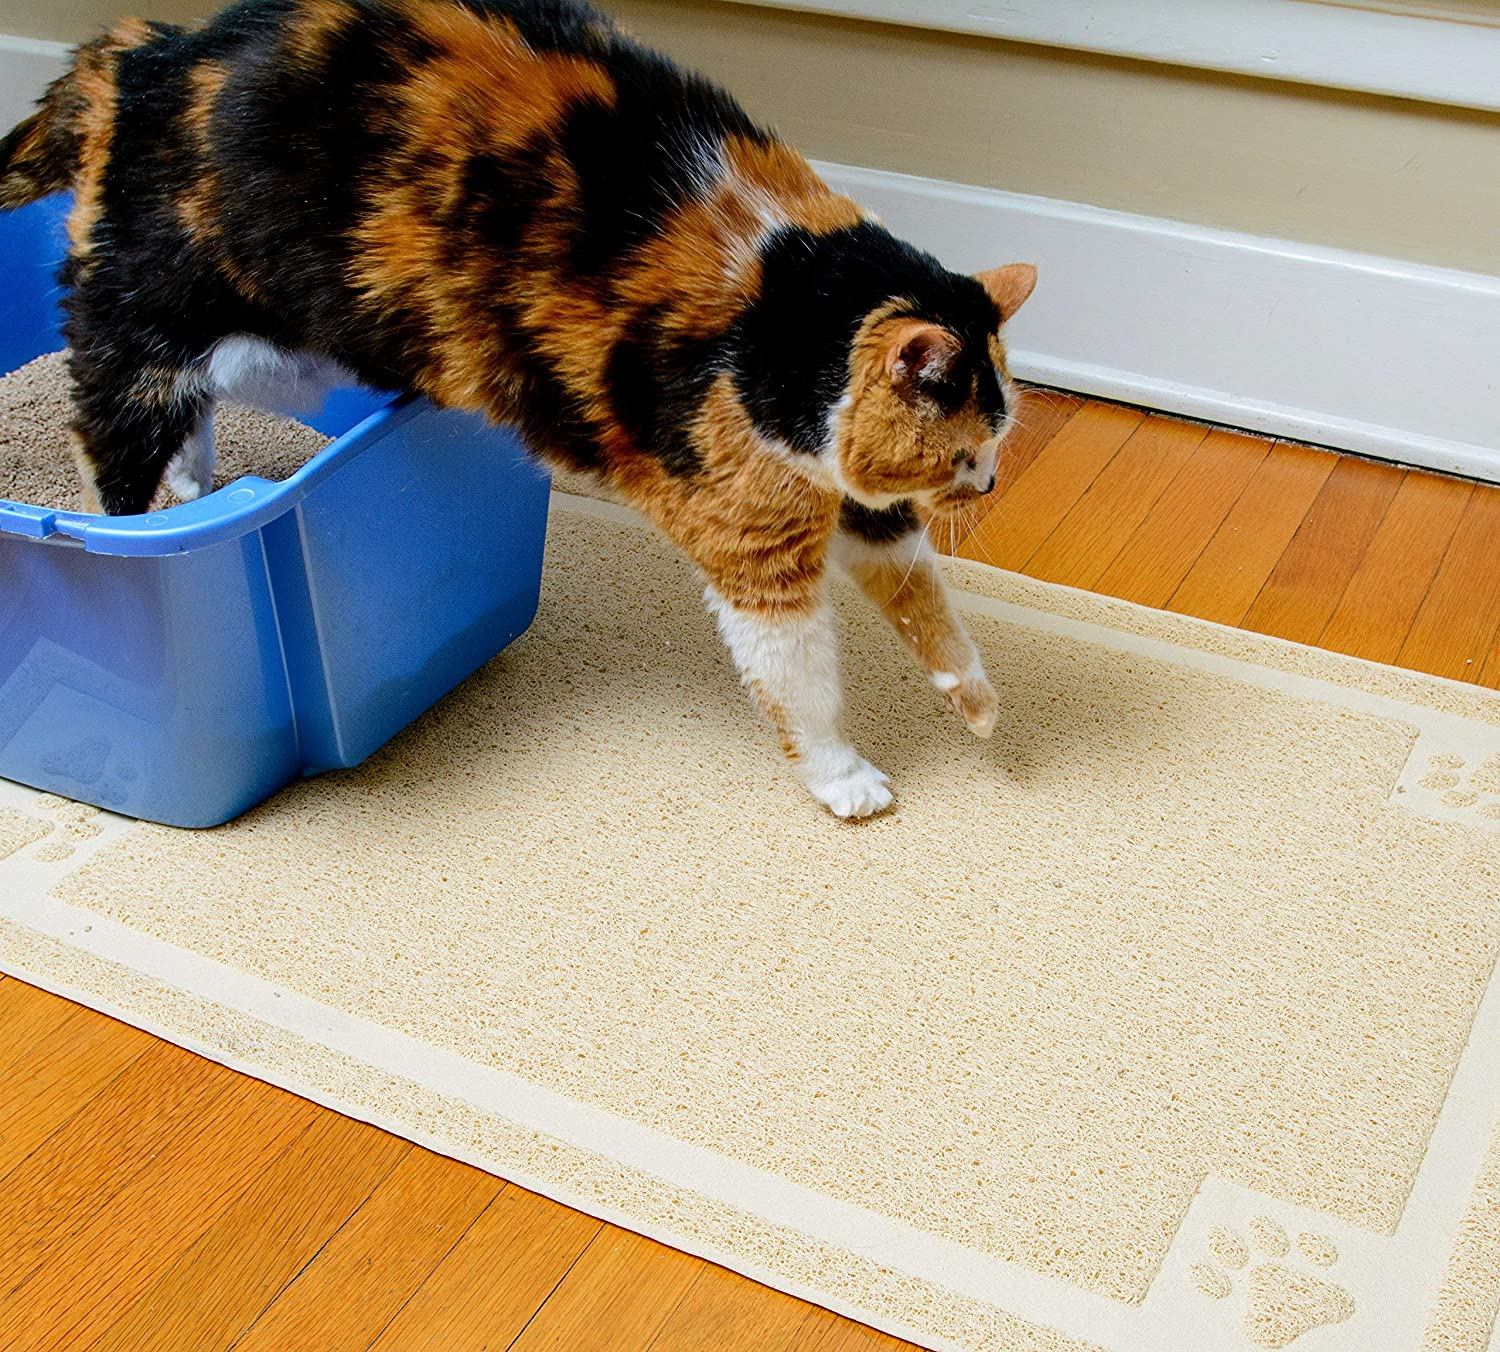 Beige CleanHouse Premium Durable Cat Litter Mat, (36x24) XL Size, Non Slip   100% Phthalate Free Cat Mat, Stops Kitty Litter Tracking and Scatter from Cat Litter Box   Extra Large